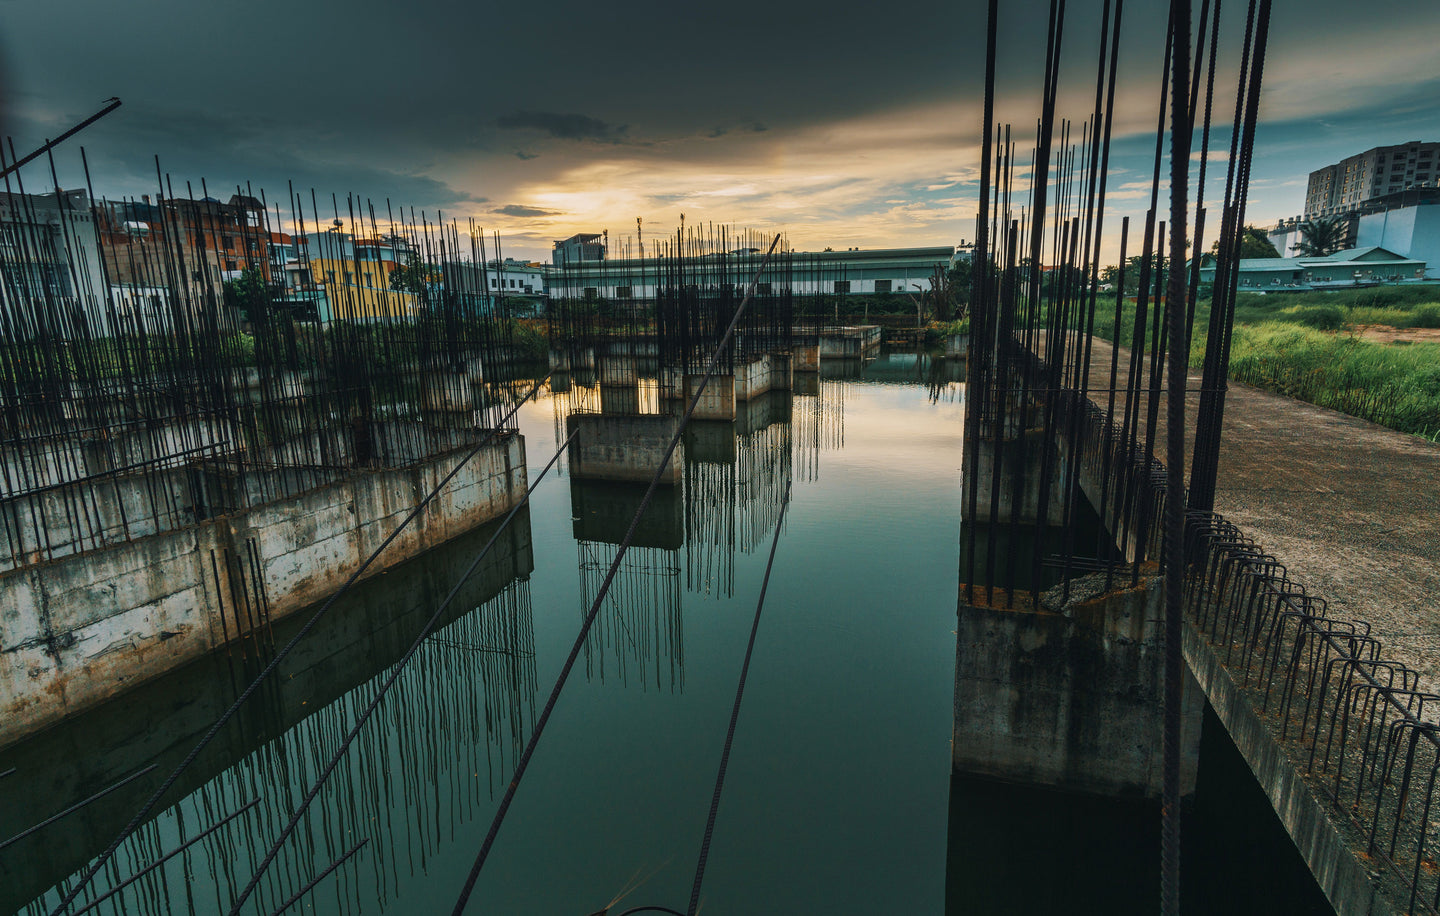 Photo of metal bars on water under dark sky - W-Photographie